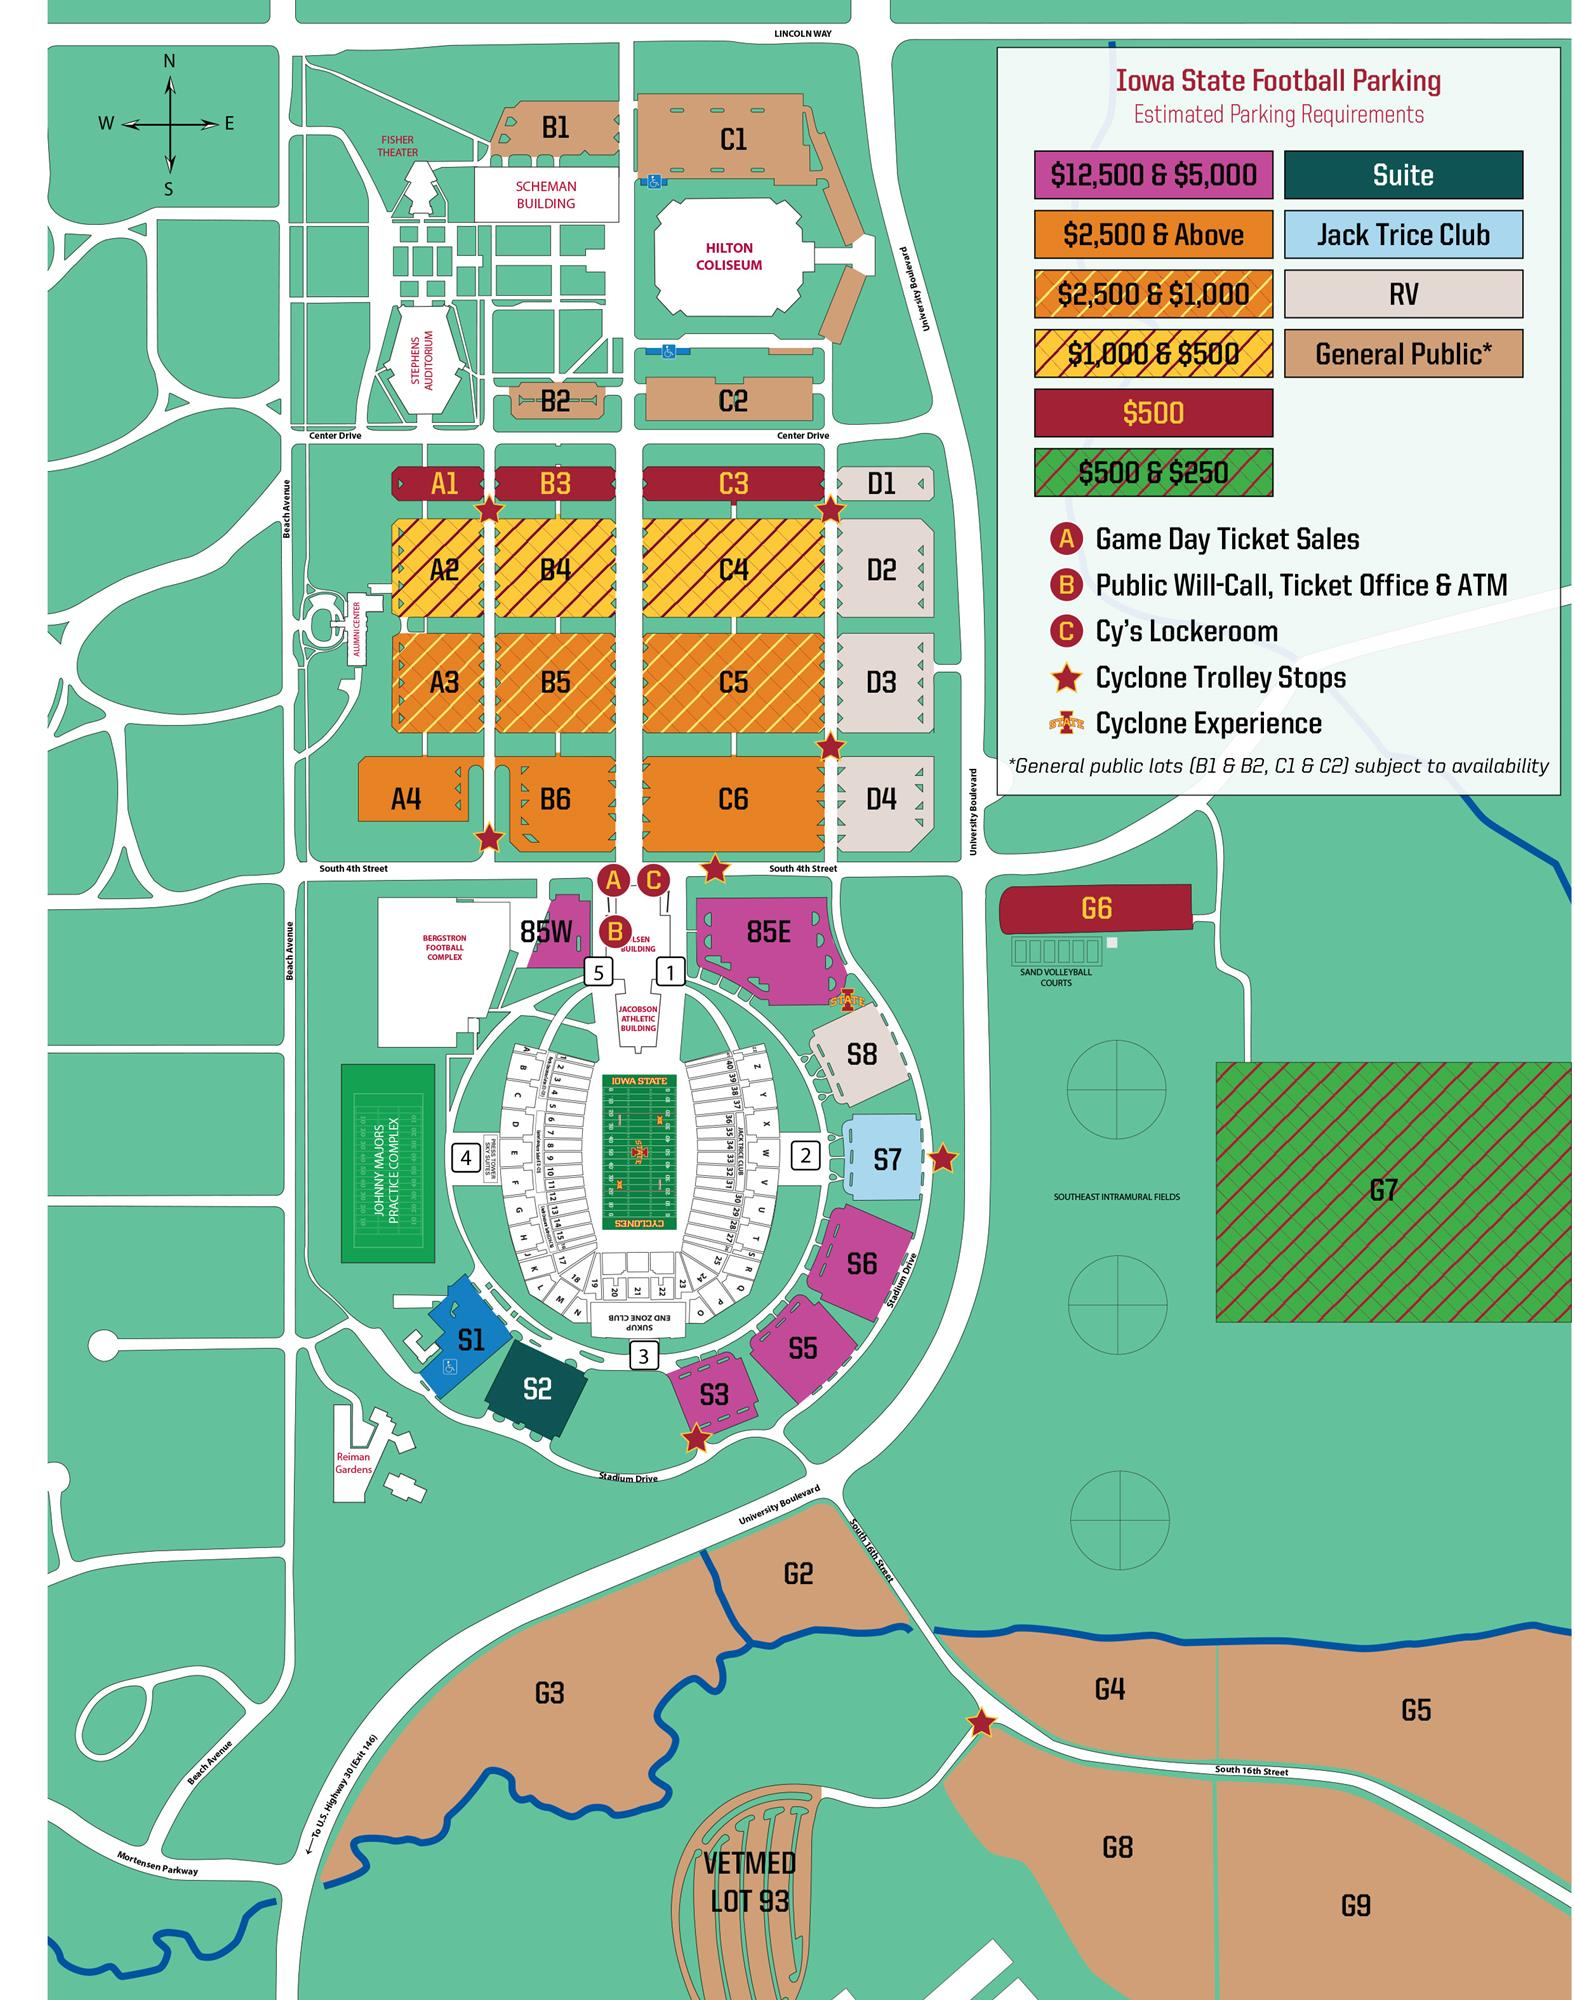 Cyclone Tailgating and Football Parking | Parking Division on university of colorado hospital campus map, ksu campus map, plymouth state university parking map, columbus state community college parking map, kansas state fair parking map, ferris state university parking map, wayne state university parking map, truman state university parking map, kansas state university font, kansas state university mapquest, weber state university parking map, kansas state university stadium seating chart, michigan parking map, kumc hospital map, san jose state university parking map, foothill college parking map, kansas state university police, kansas state univerty map, kansas state university history, cleveland state university parking map,